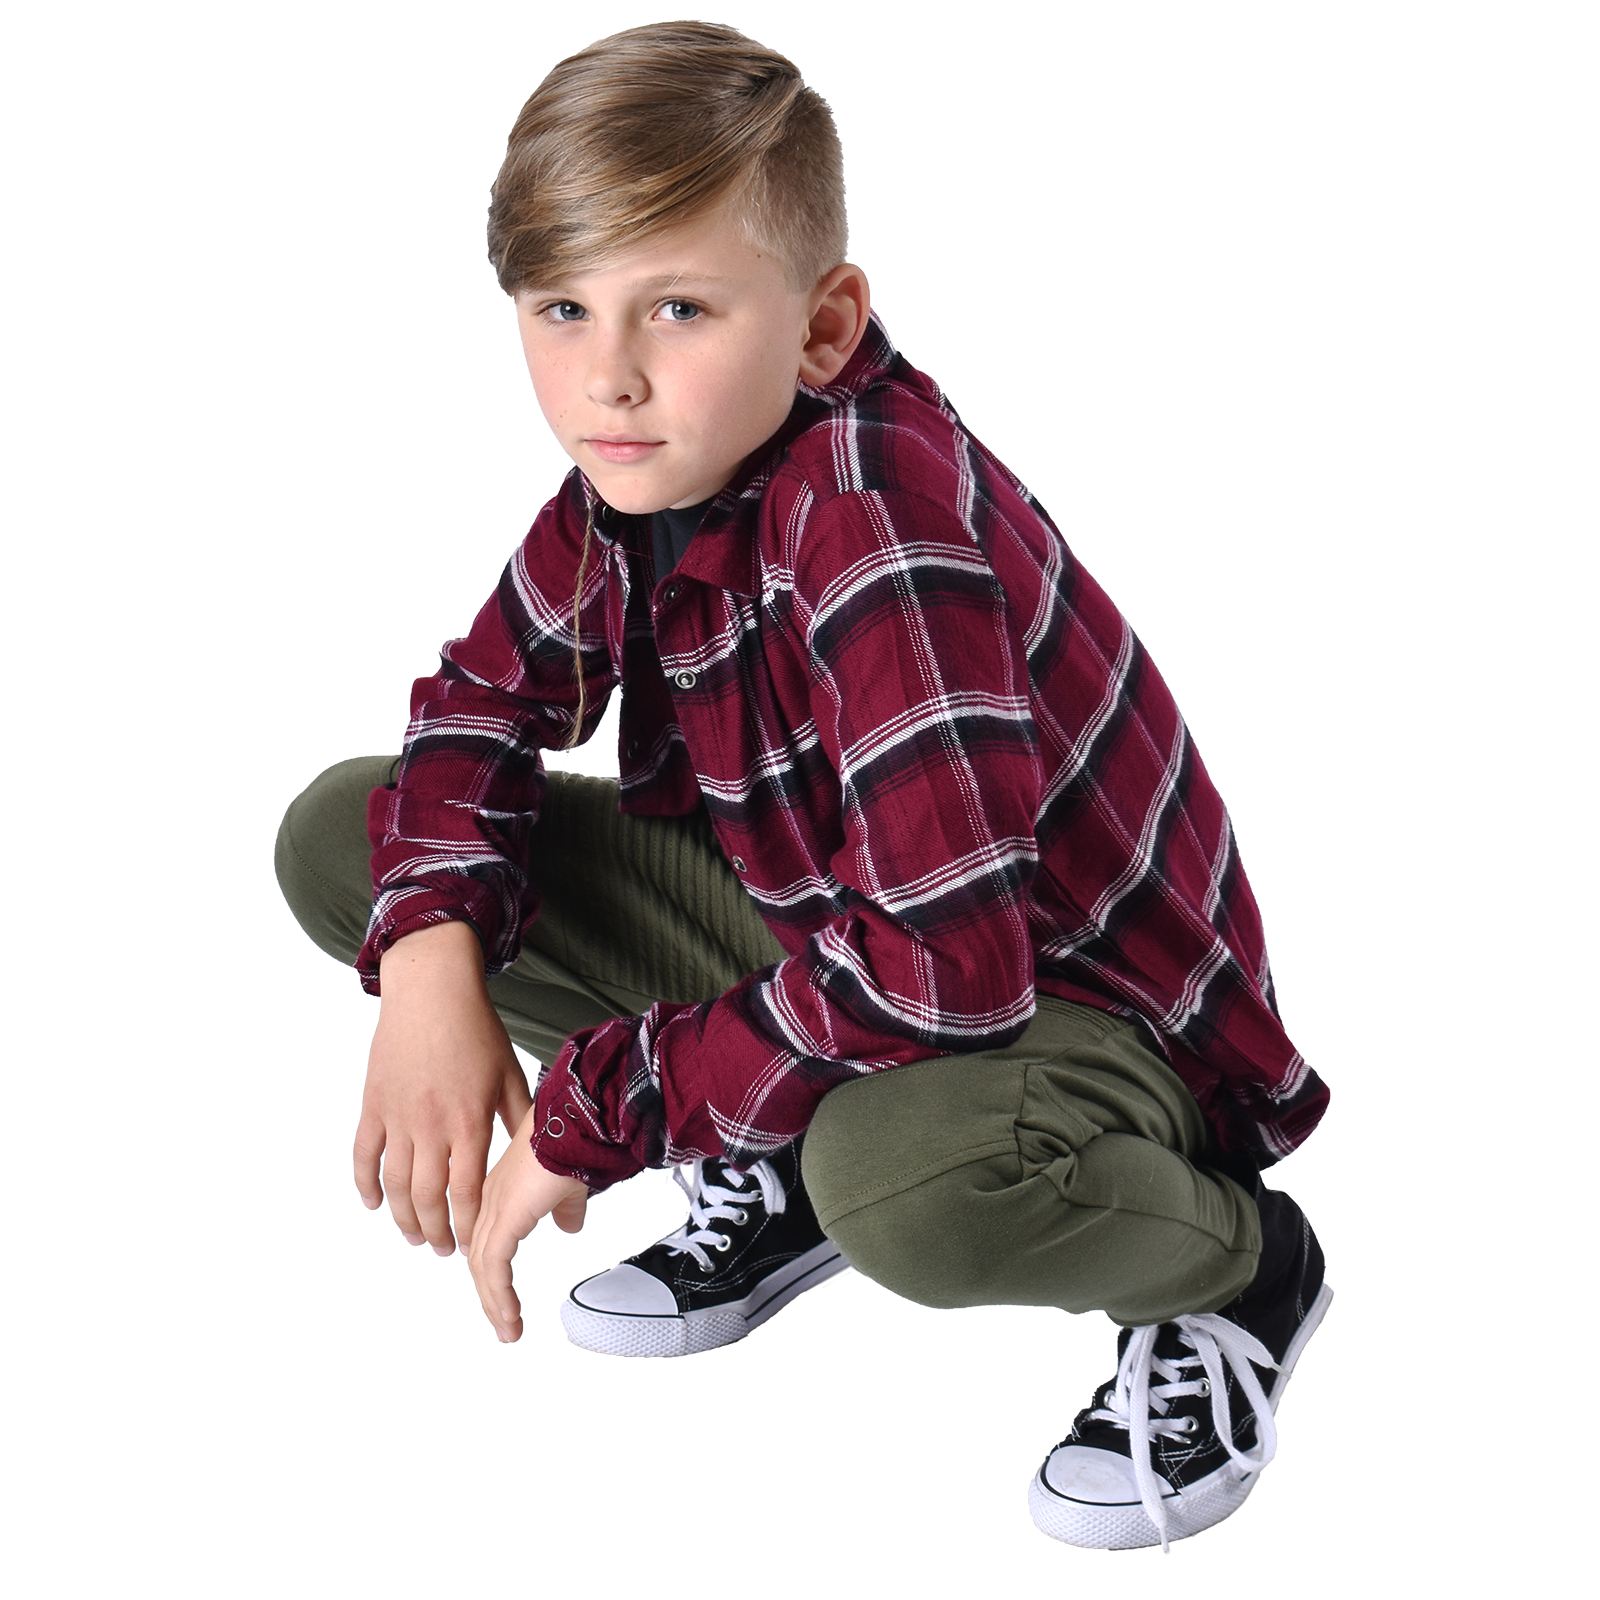 boy hip hop dancer in pose